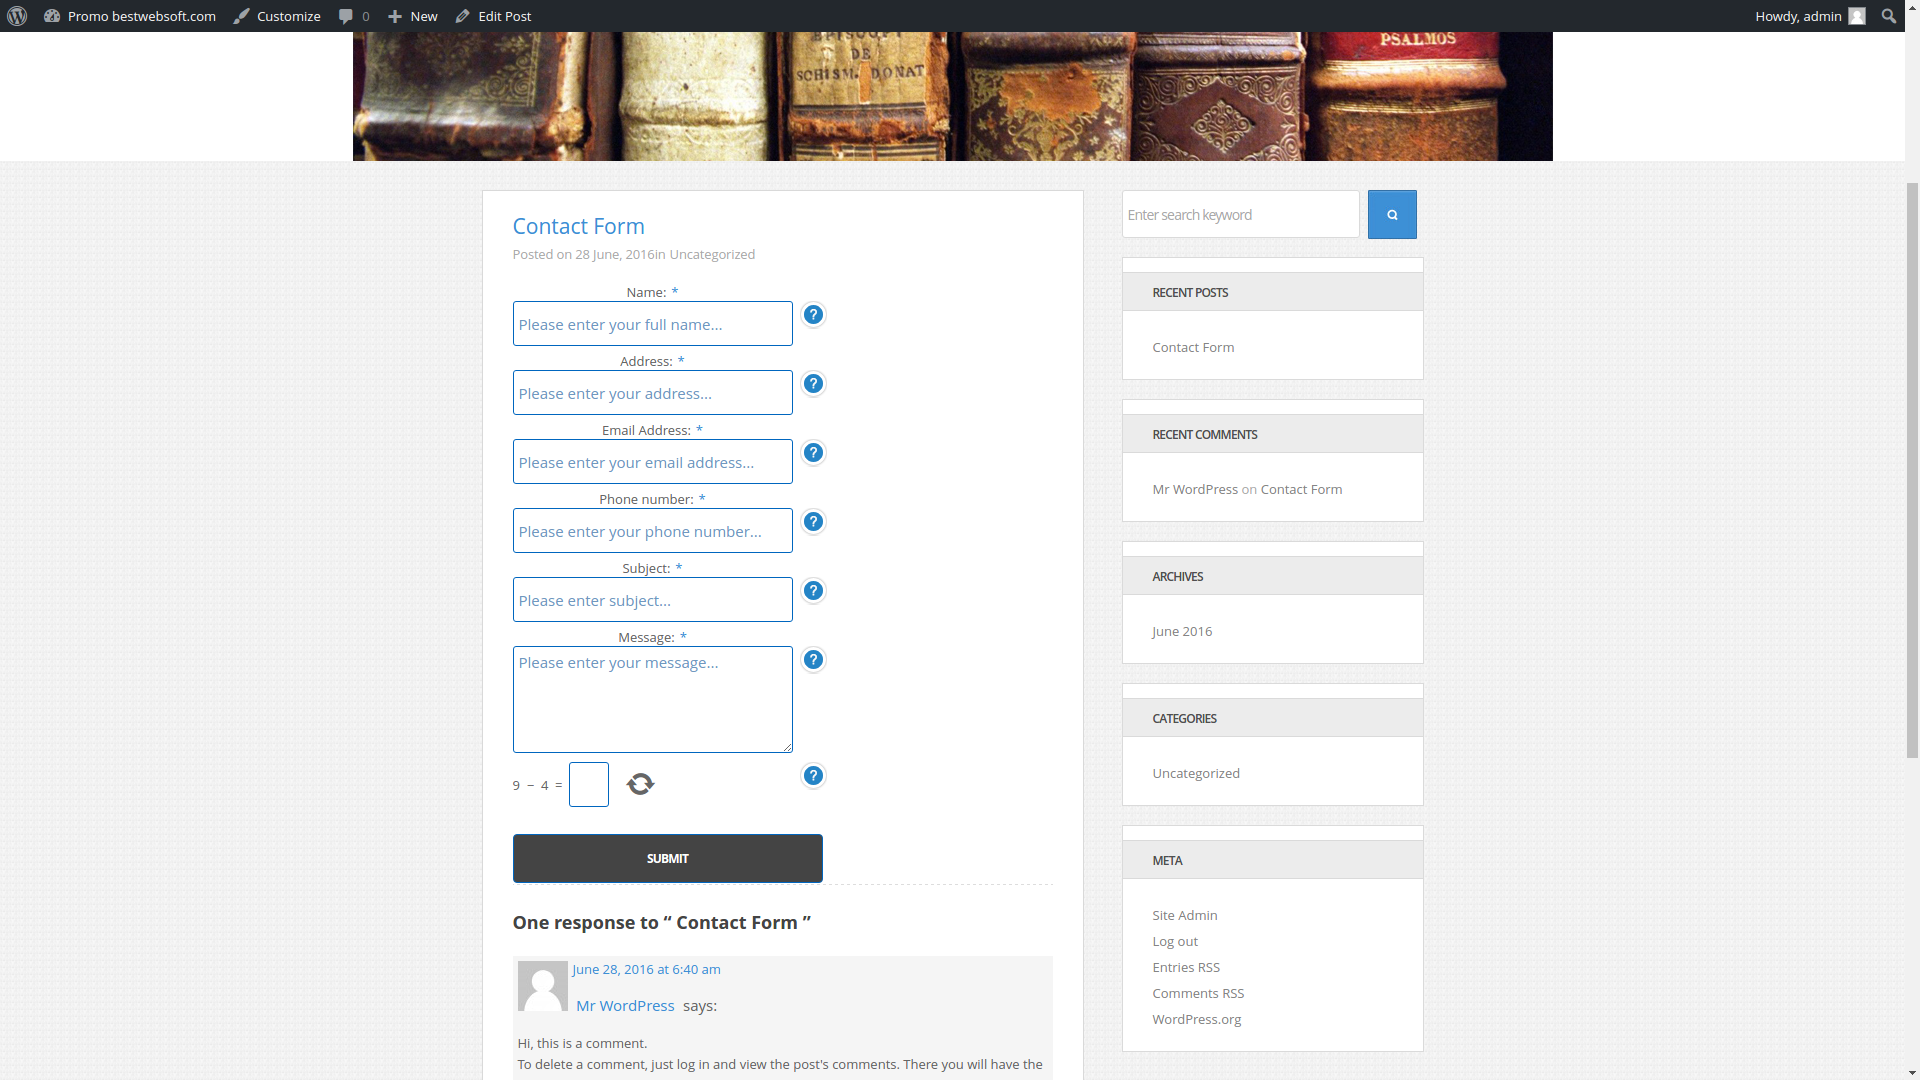 contact form screenshot 9